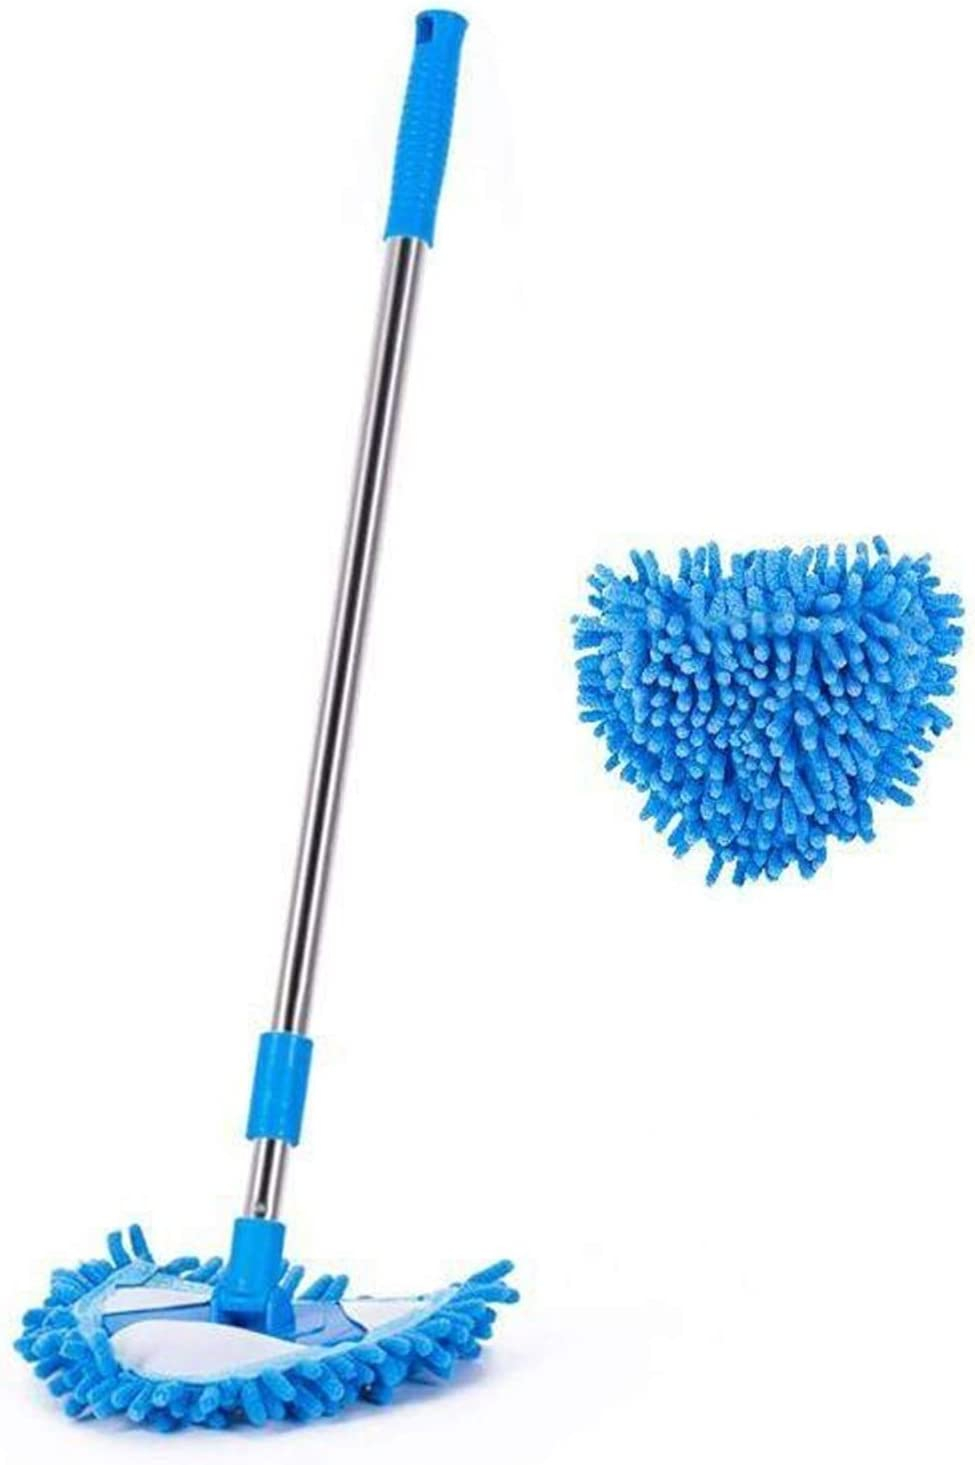 lxm Popular brand in the world Extendable Triangle Mop 180 Rotatio Manufacturer direct delivery Microfiber Multifunction